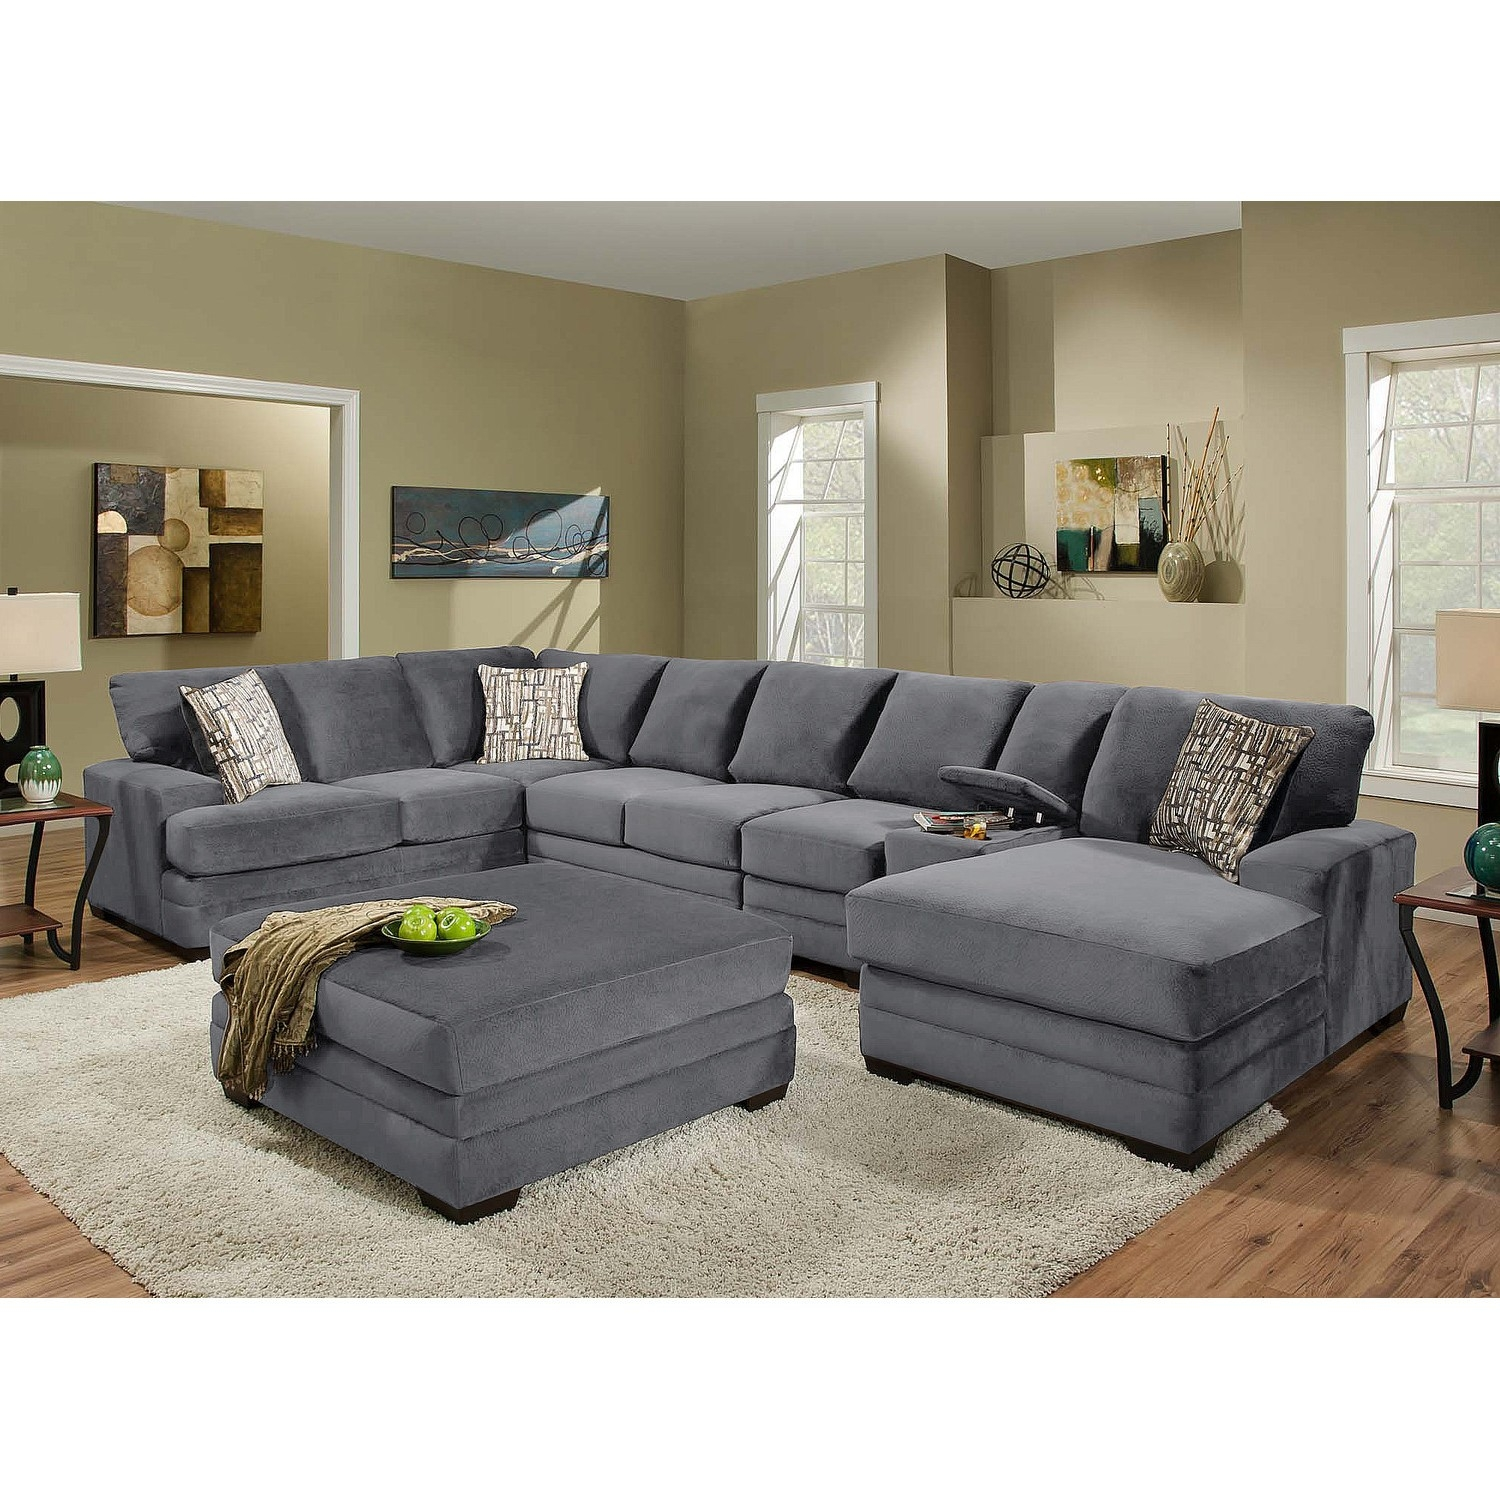 Exquisite Grey Sectional Sofas Sofas Sectionals Modern Grey With Down Filled Sectional Sofas (View 8 of 15)